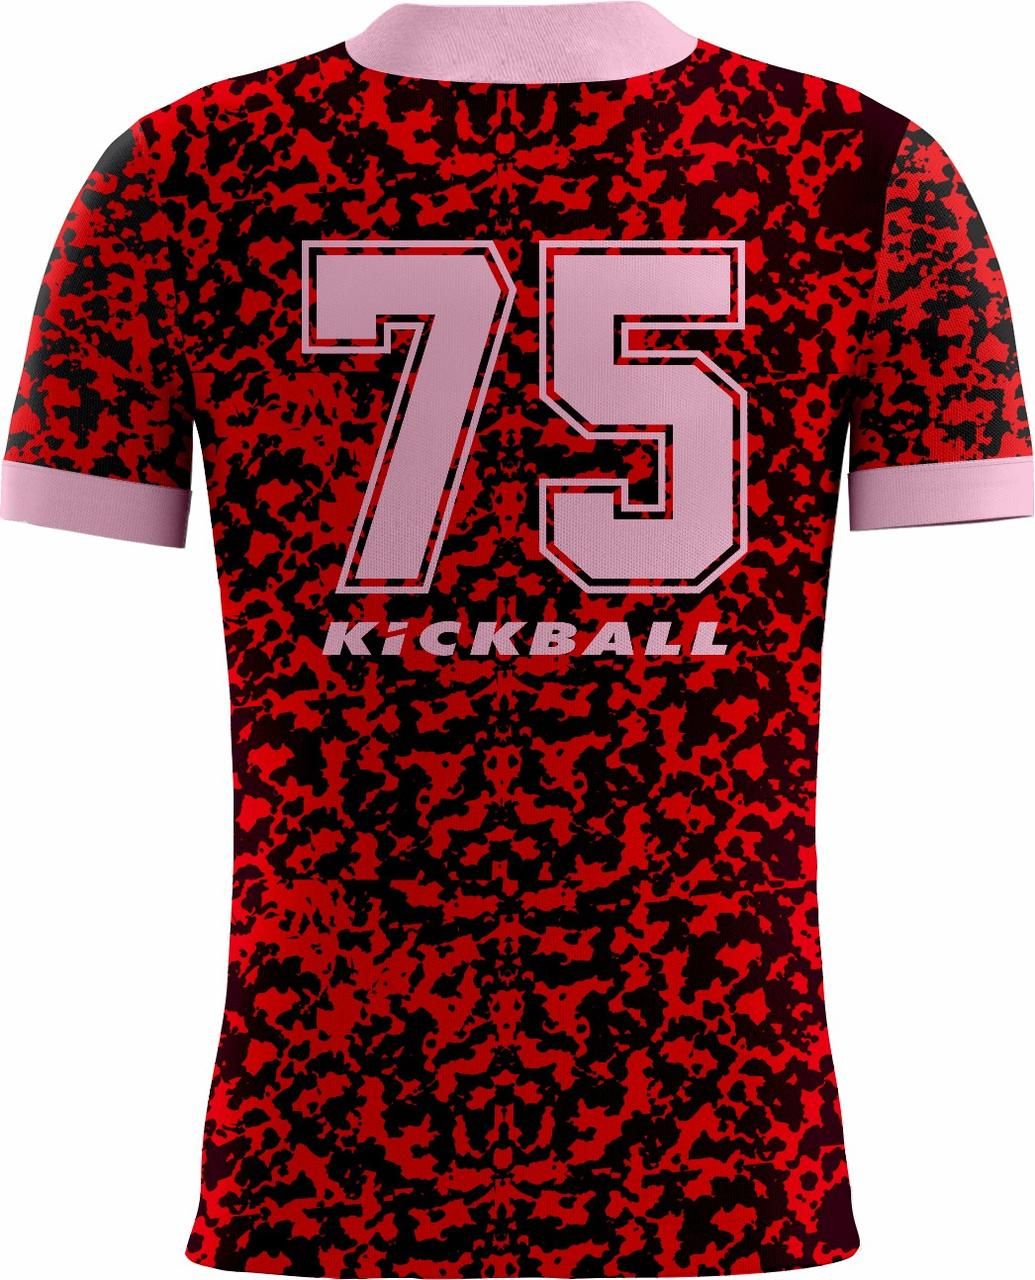 Camisa Of. Limeira Tomahawk Tryout Masc. Outubro Rosa